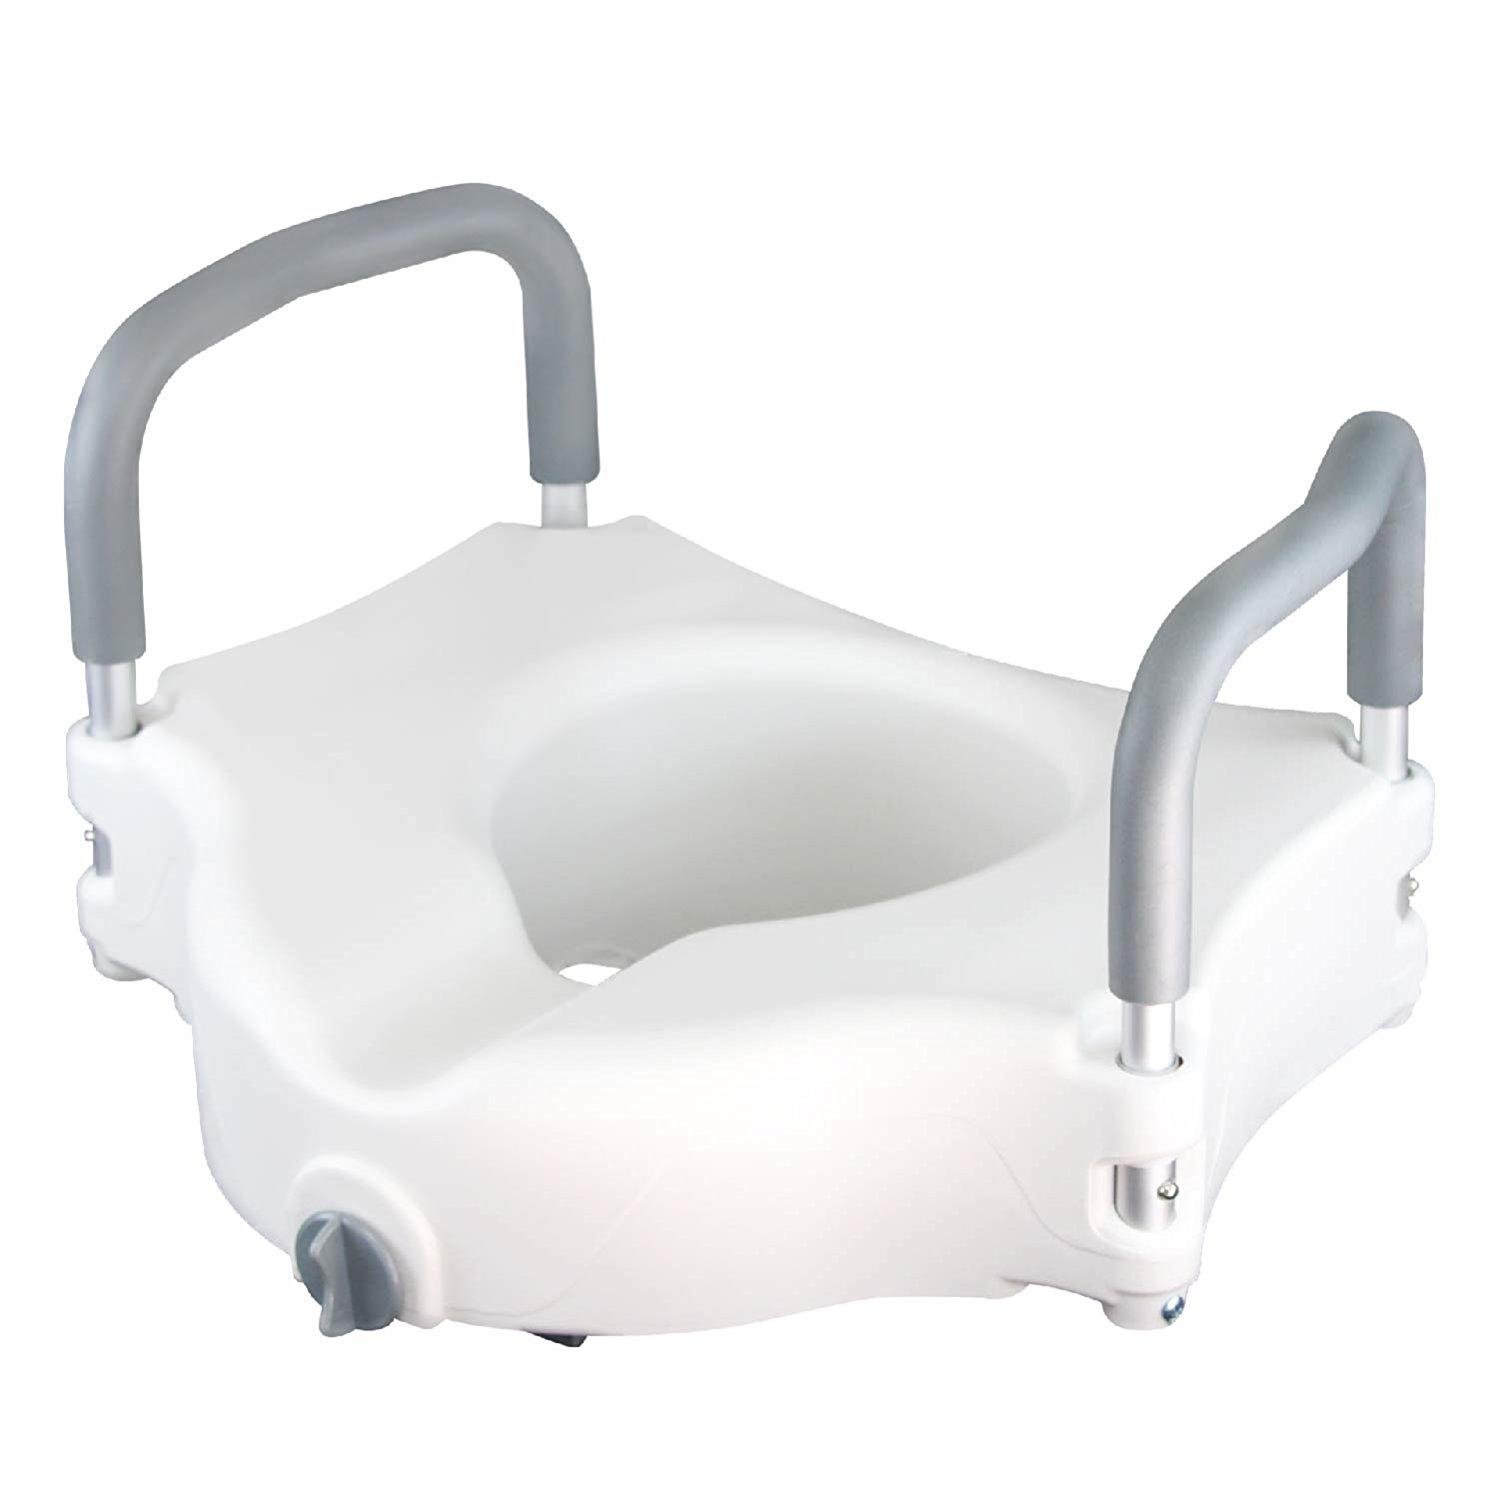 Buy Toilet & Bath Aids in India | Low Prices on Commode Wheelchairs ...